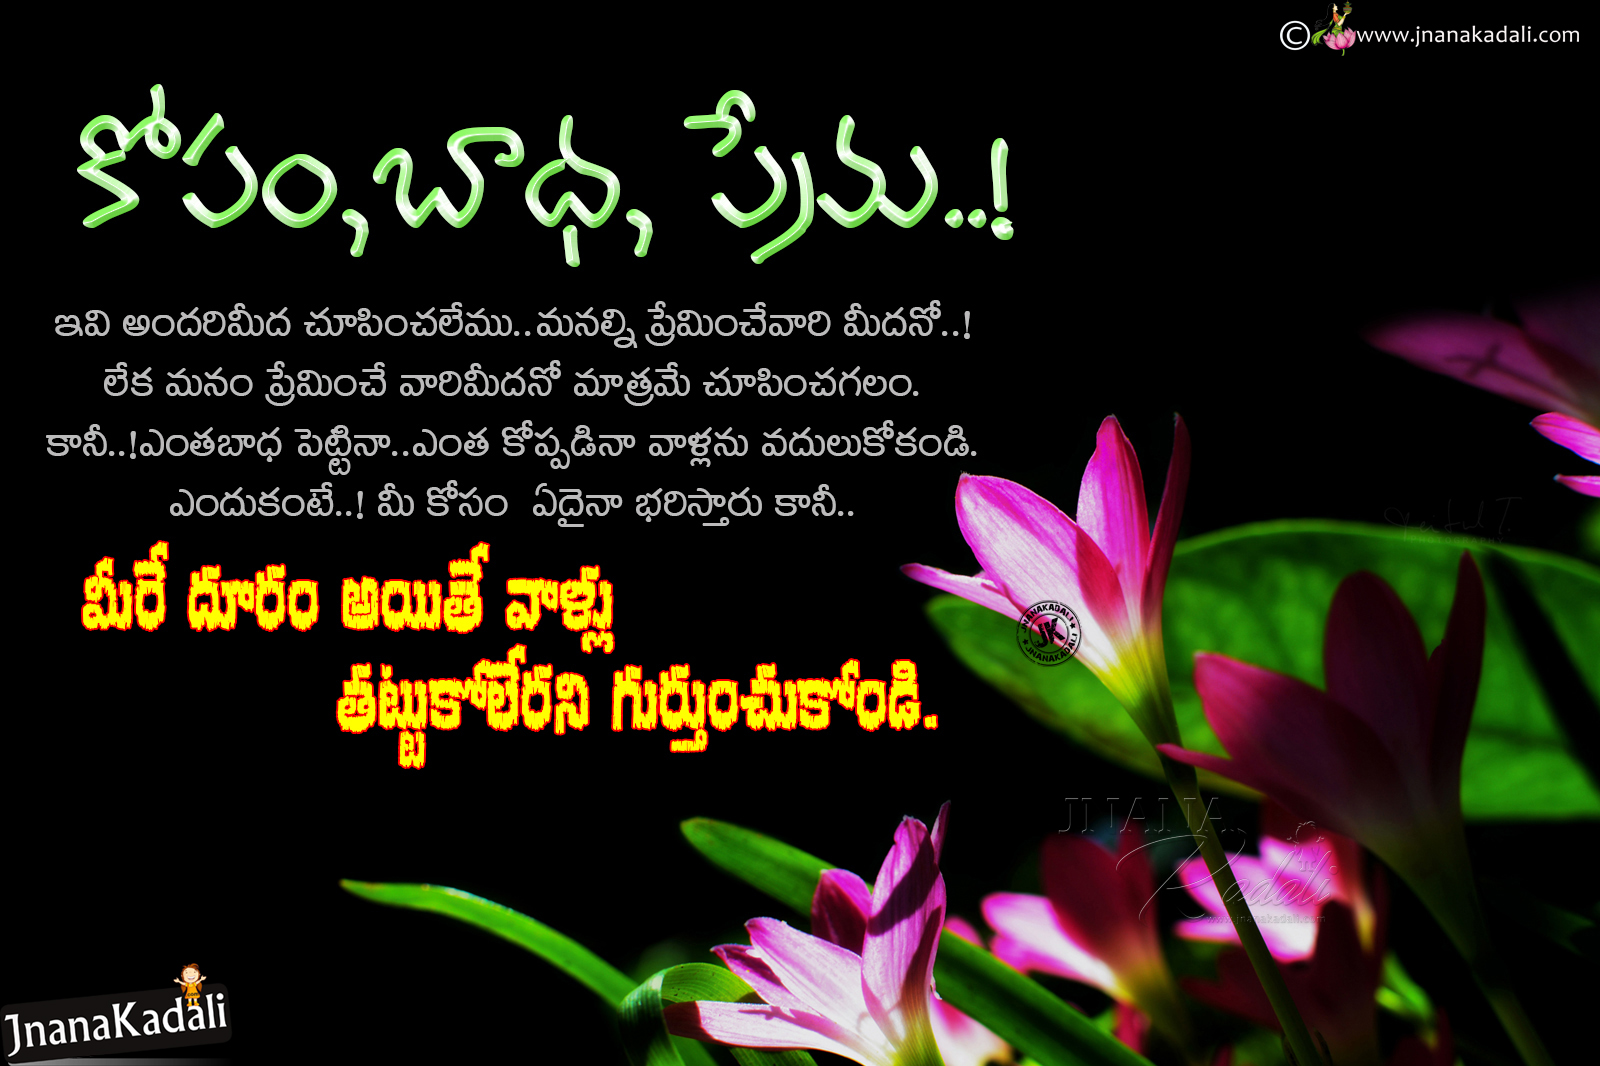 Rhyming Life Quotes Heart Touching Telugu Relationship Quote With Hd Wallpaper Free